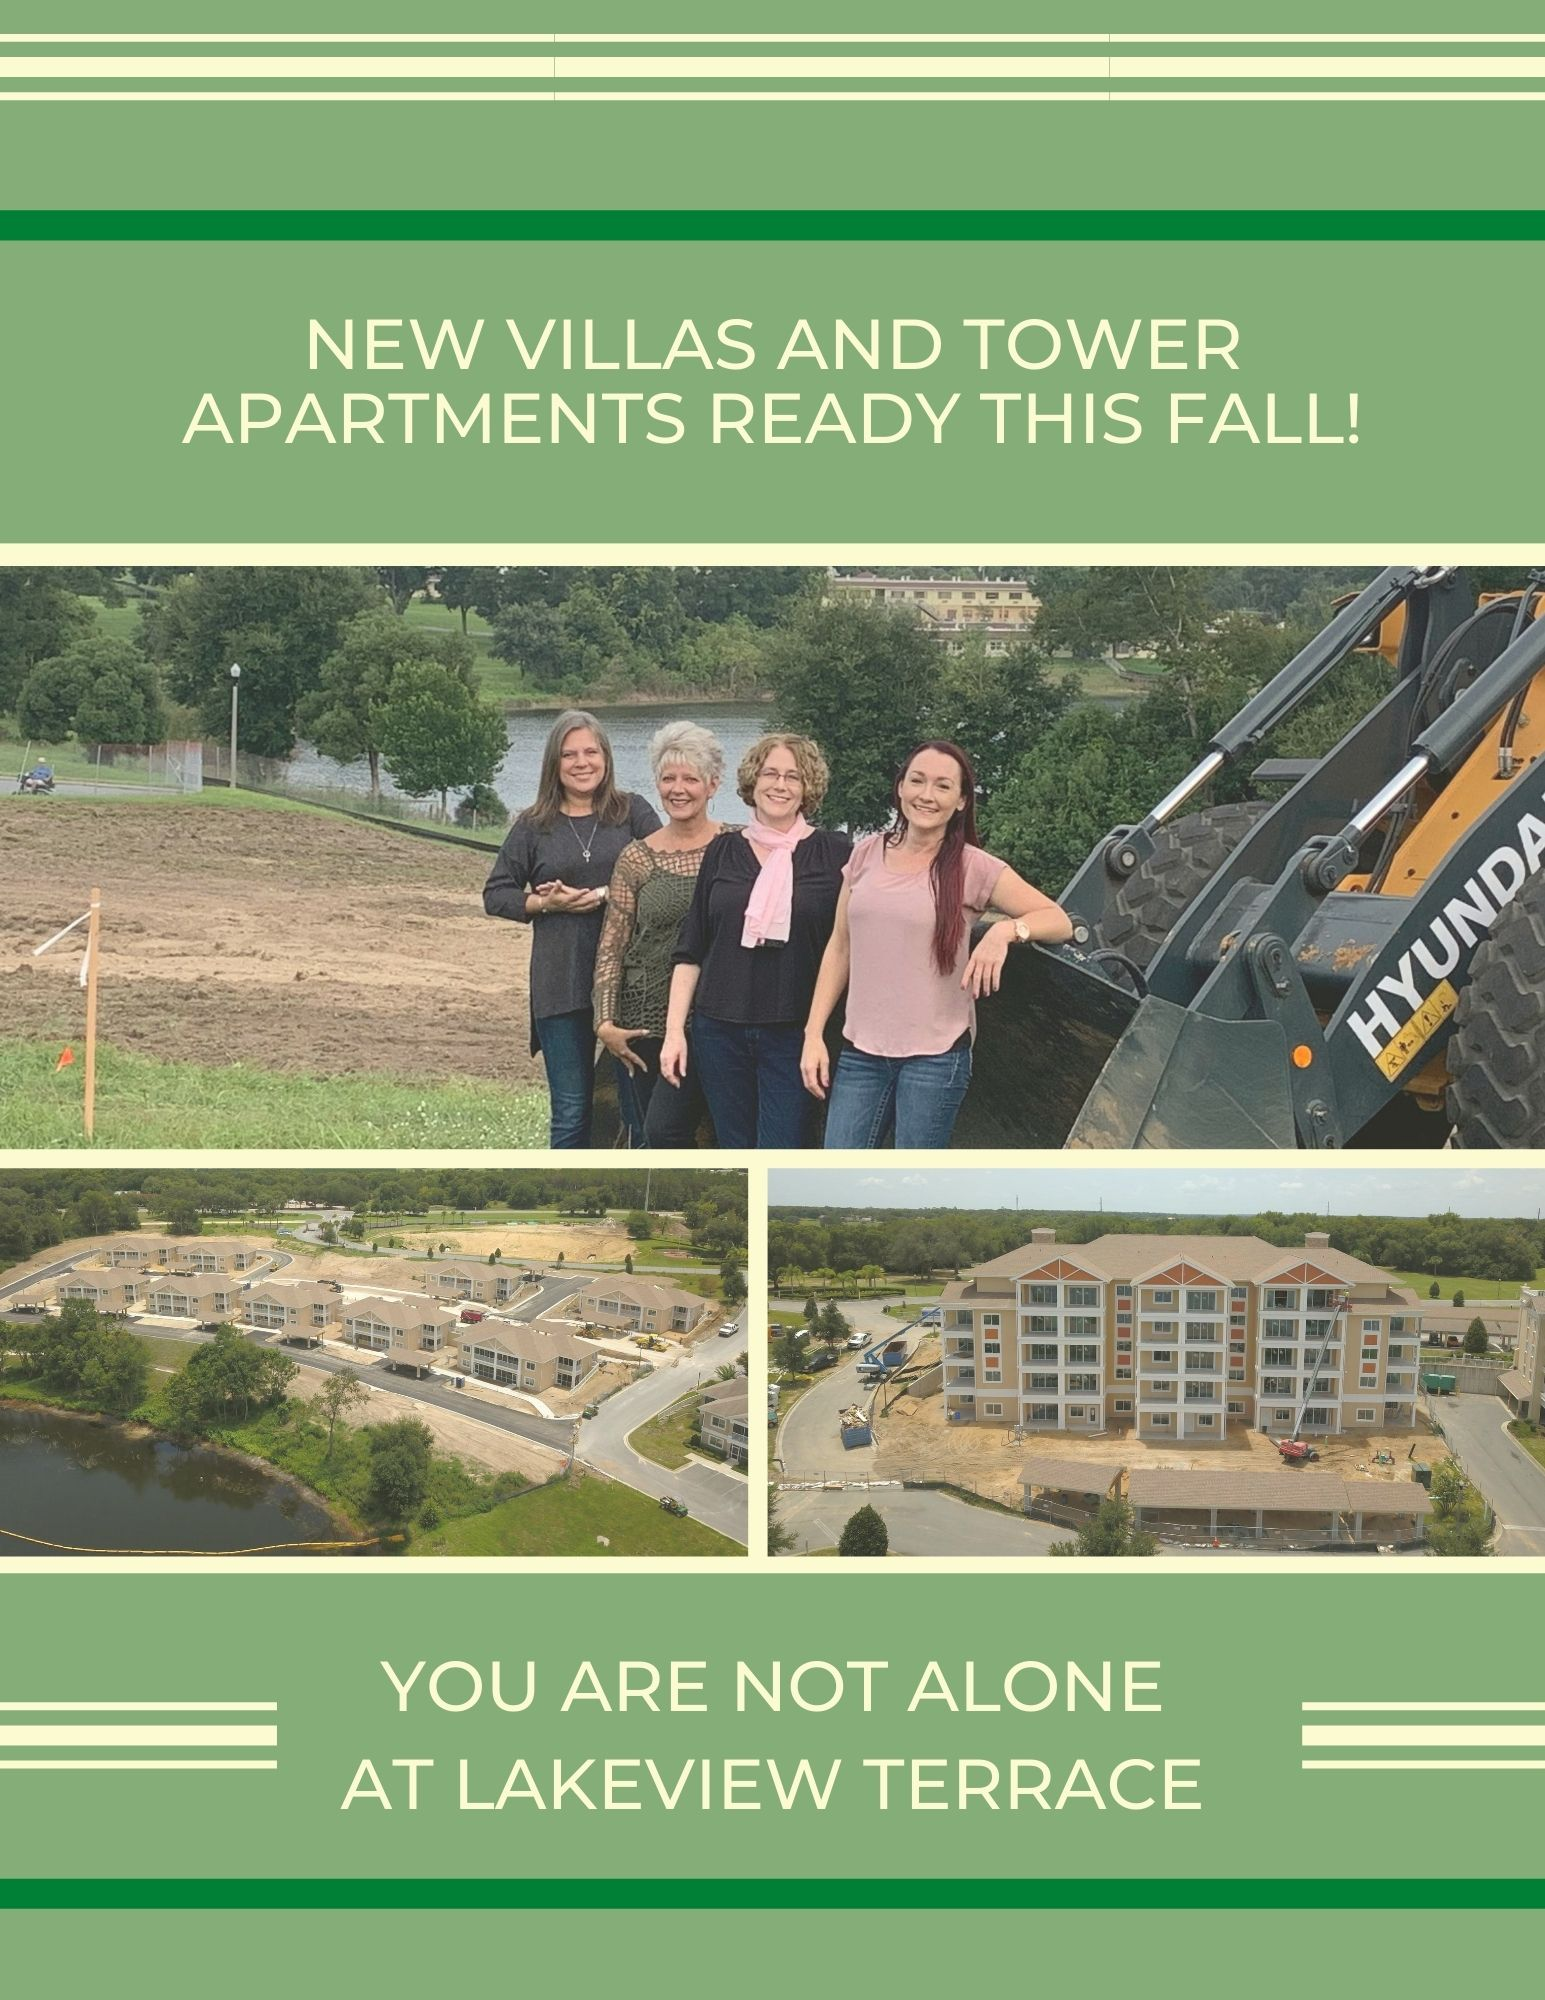 New Villas and Tower Apartments